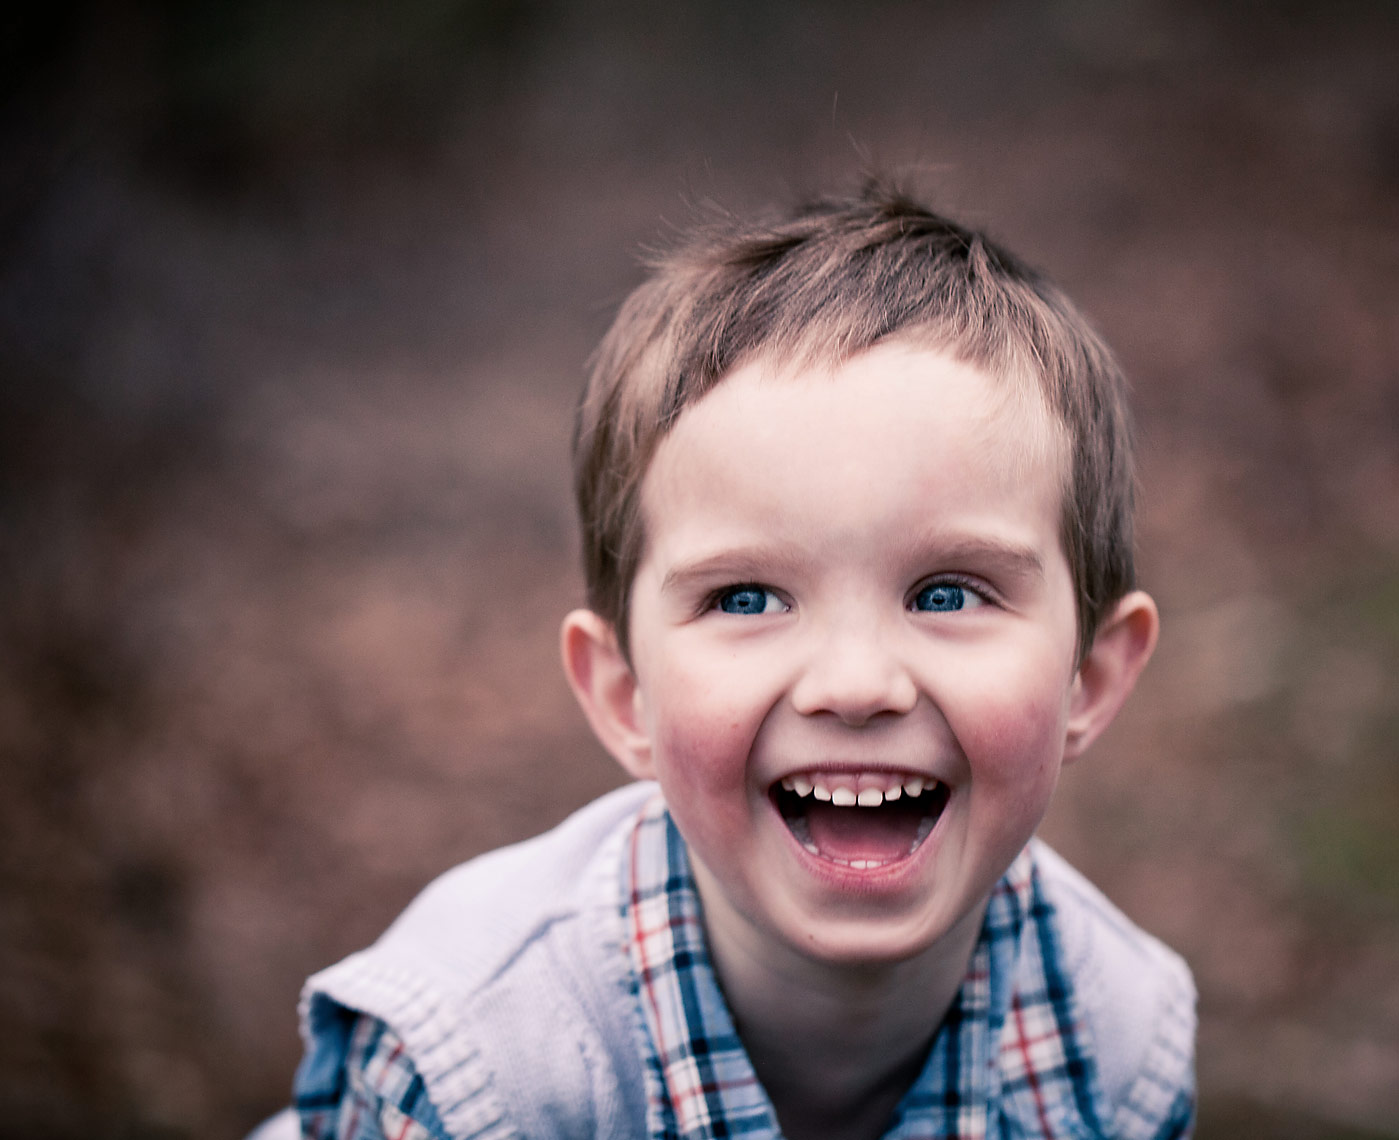 BOY LAUGHING IN FOREST.jpg